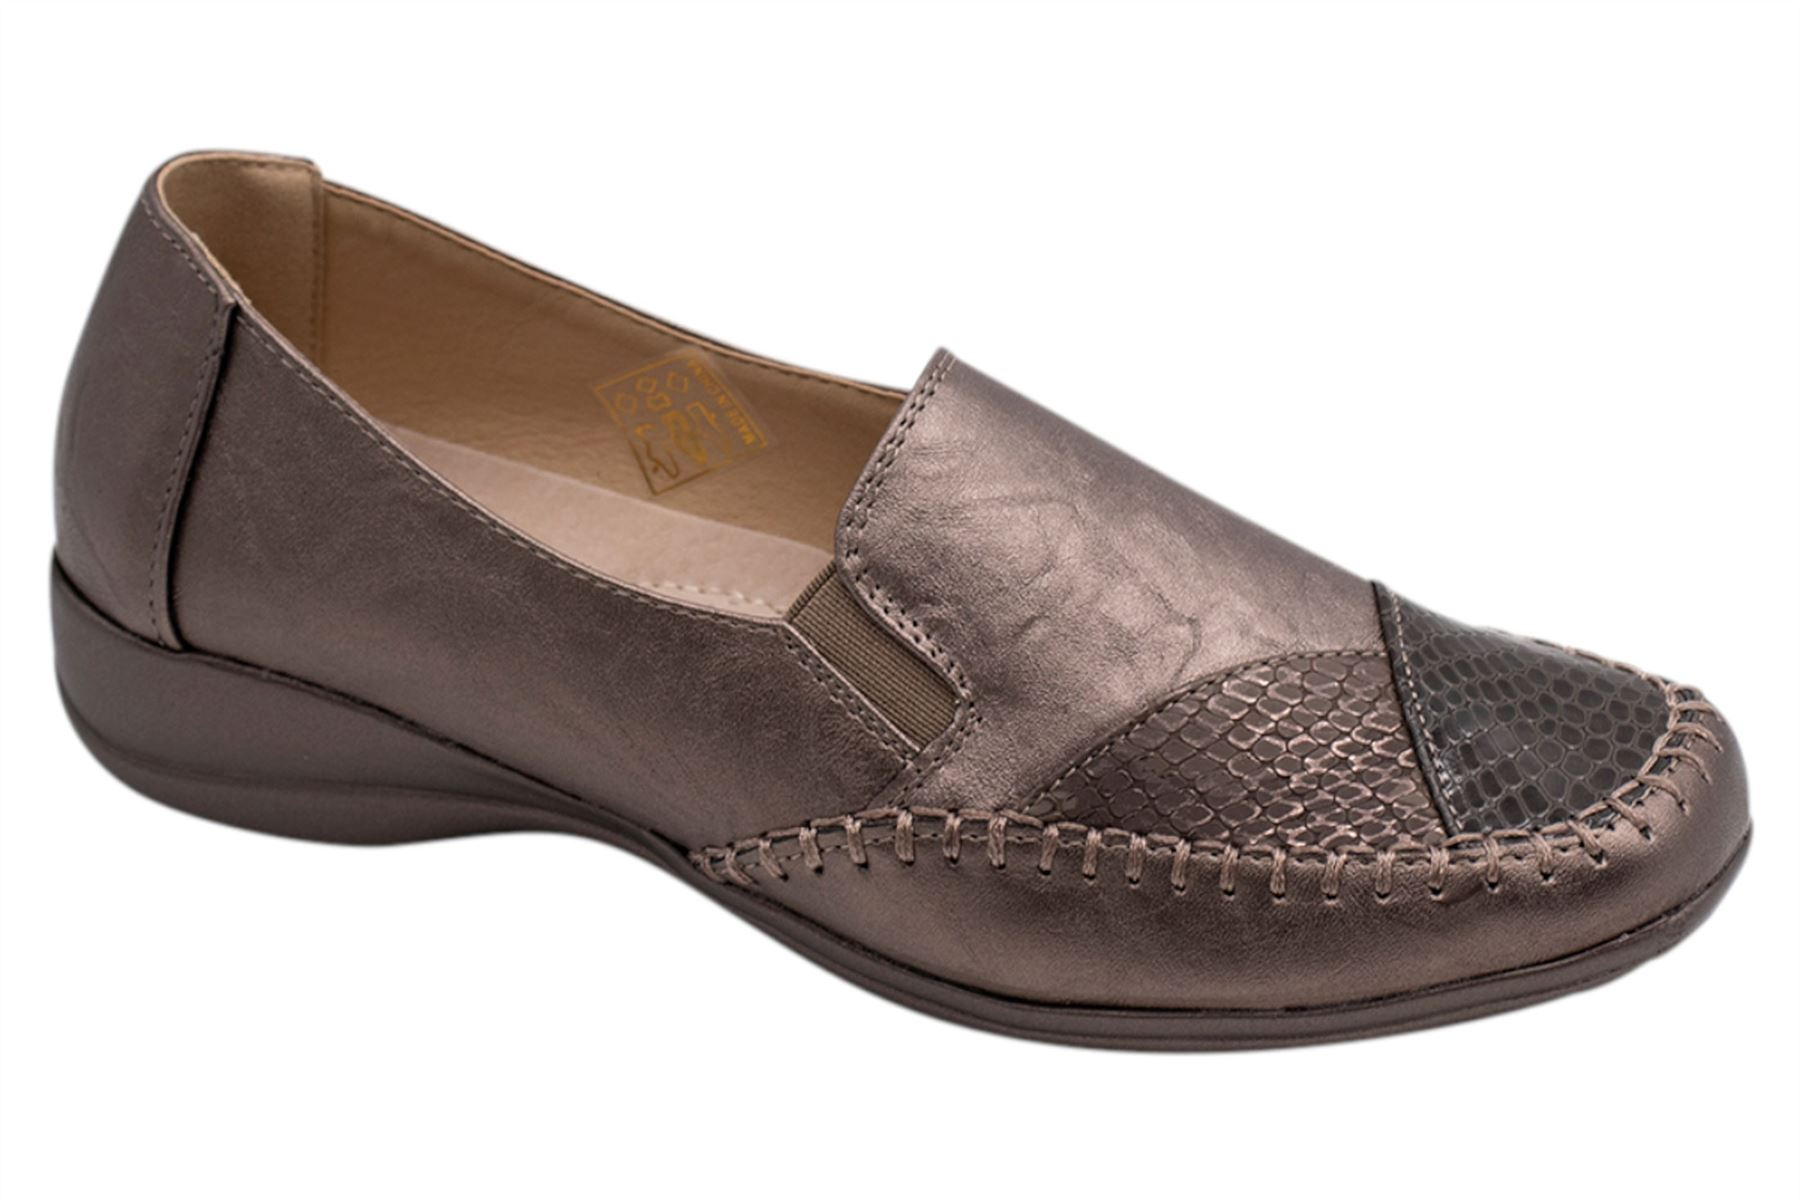 Womens-Flat-Shoes-Ladies-Pumps-Office-Work-Casual-Slip-On-Loafer-Size thumbnail 23